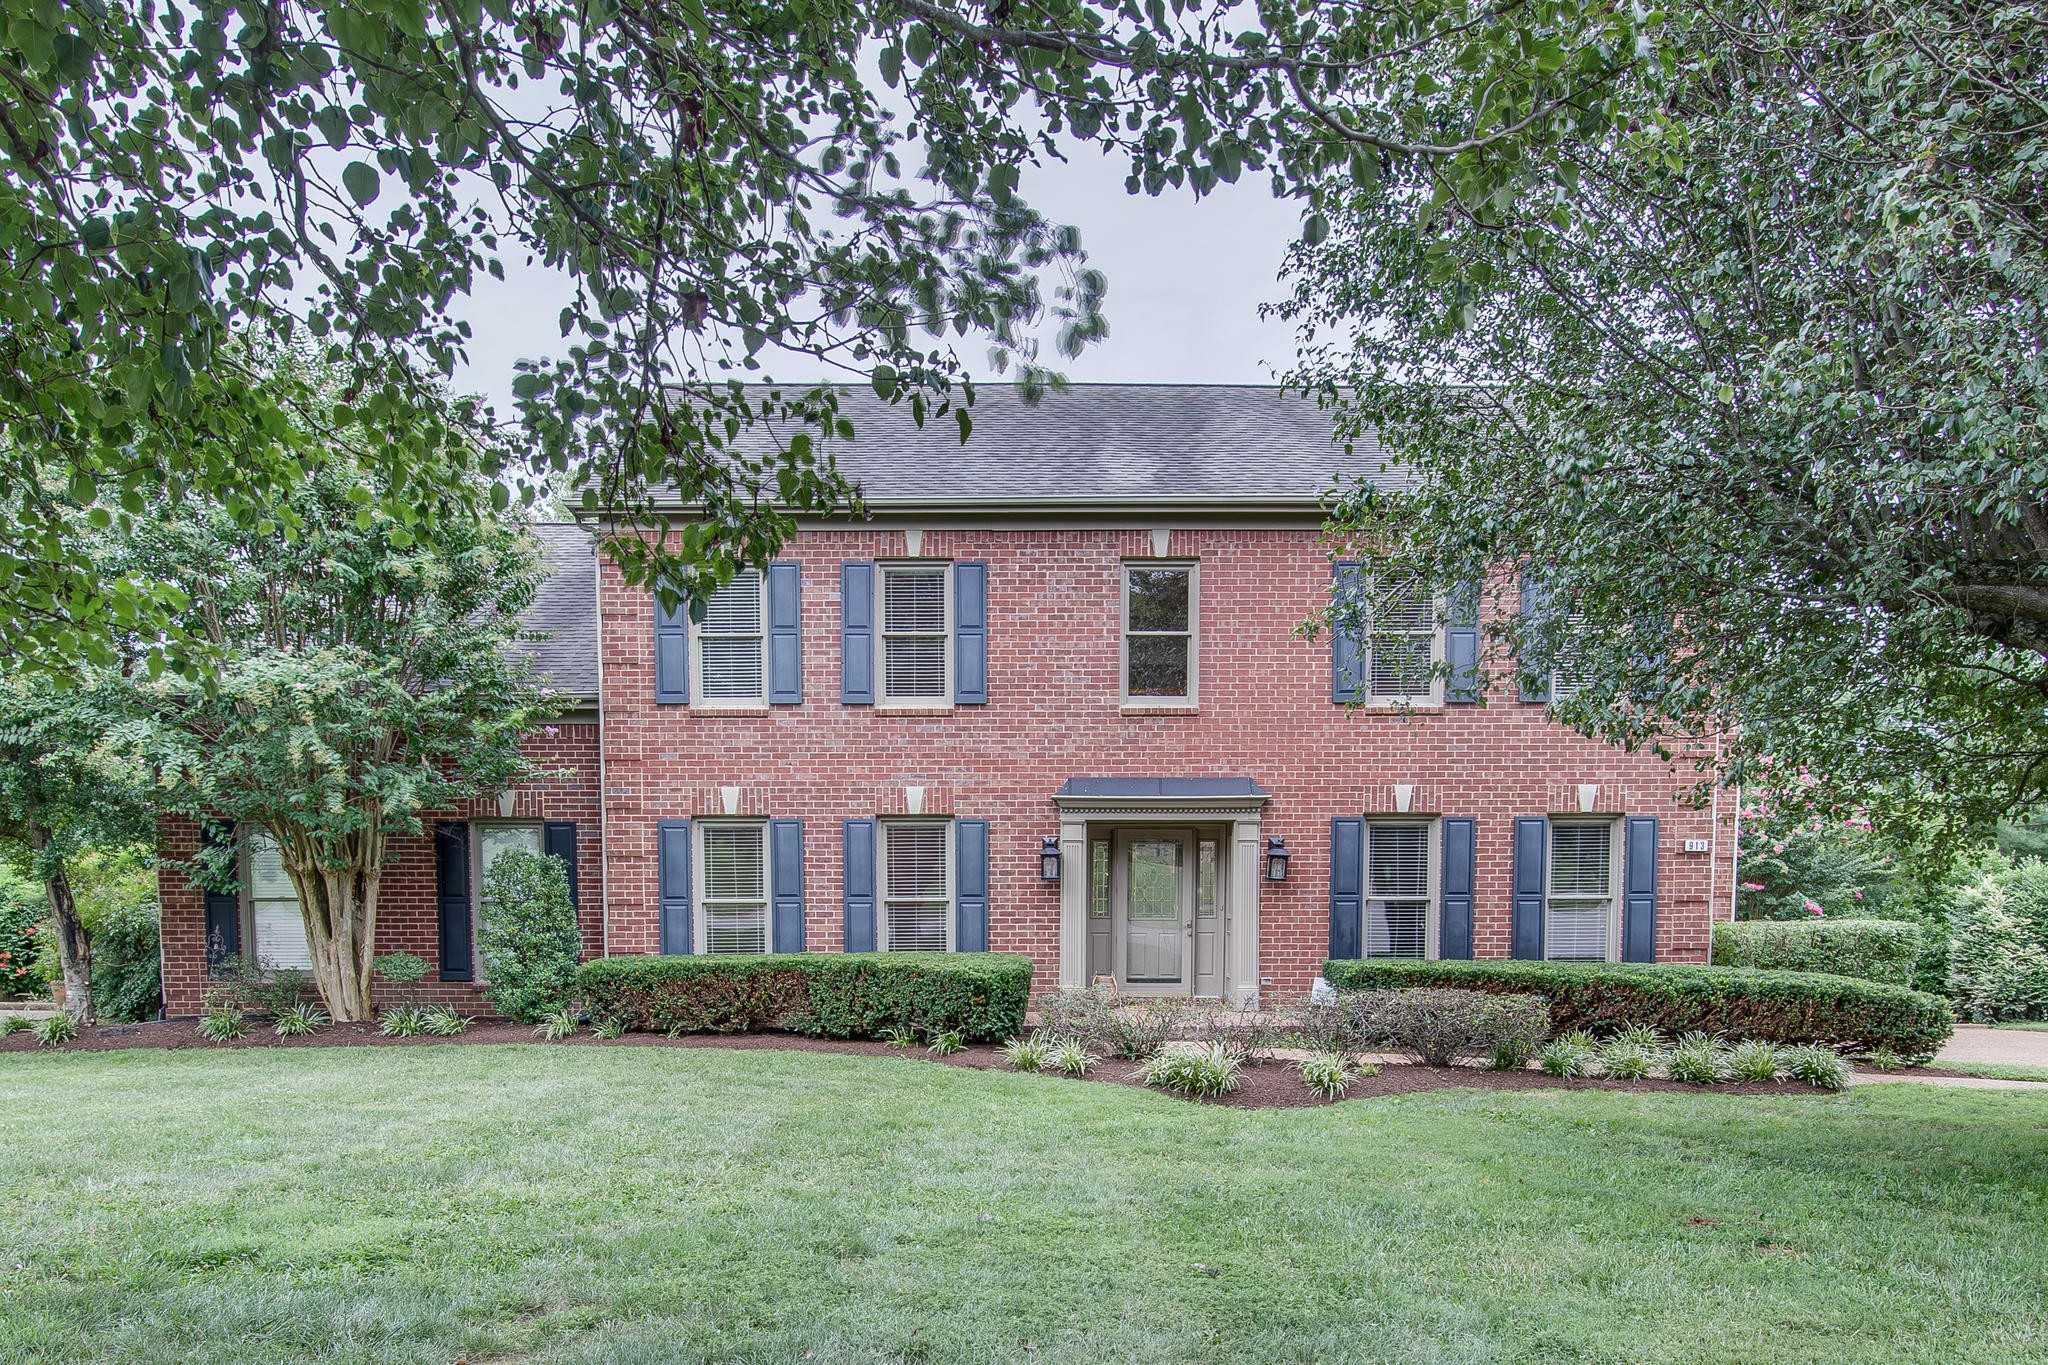 Open House Sat 8/22 2-4. Stately house on a quiet cul de sac in beautiful Cottonport neighborhood!  A place for everyone in this flexible floor plan with 4 bedrooms and multiple flex spaces. New hardwoods throughout main level and bonus space. Updated kitchen with granite countertops open to breakfast room. Excellent floor plan for multiple living, homeschool or workspaces. Vaulted and open living room with great natural light throughout. Huge private back porch you will never want to leave!